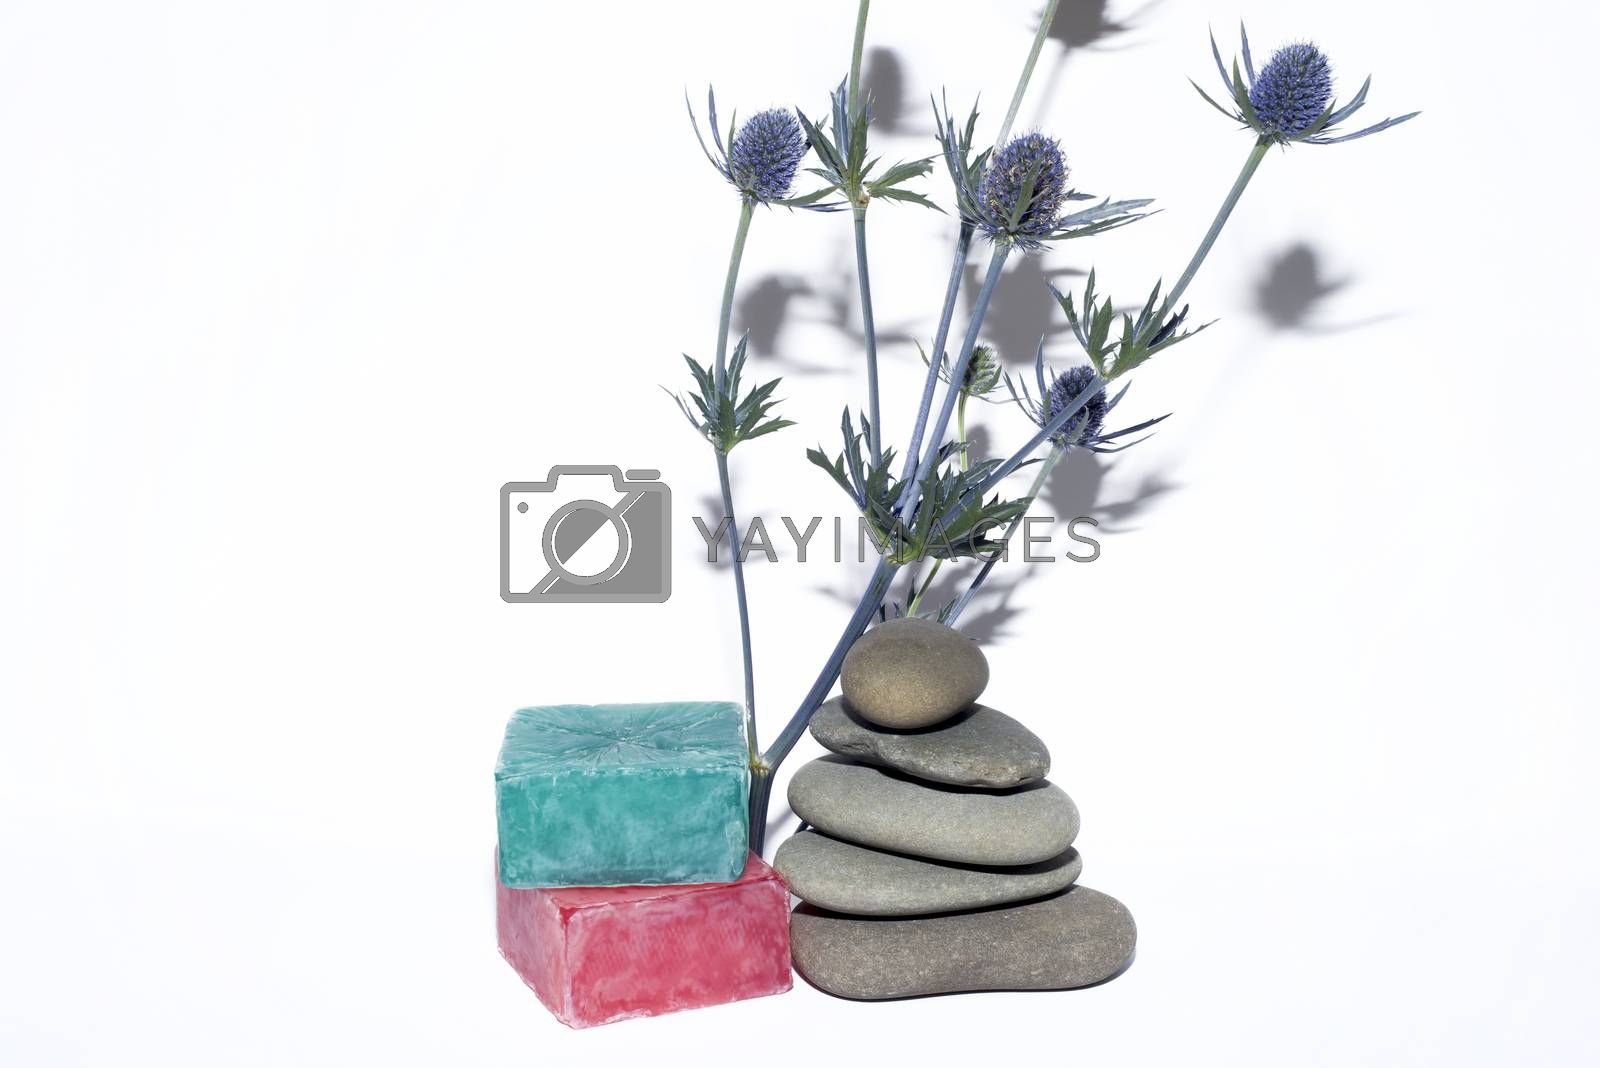 soaps off various shades with grey sone pebbles and lavender